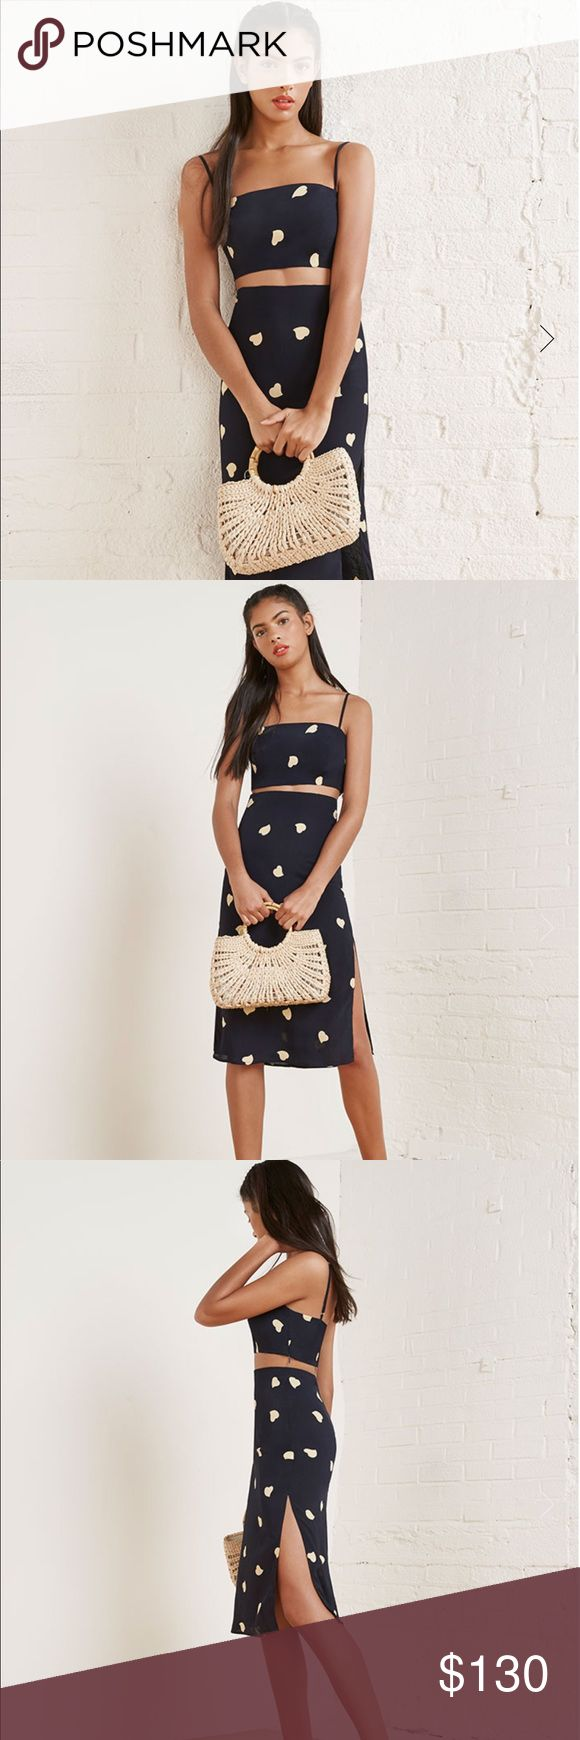 Reformation Ace Two Piece Better together. This is a two piece set with a cropped top and a slim fitting, straight skirt. - Adjustable straps- Hits below knee- Slim fit skirt- Straight neck- Very cropped Reformation Dresses Midi